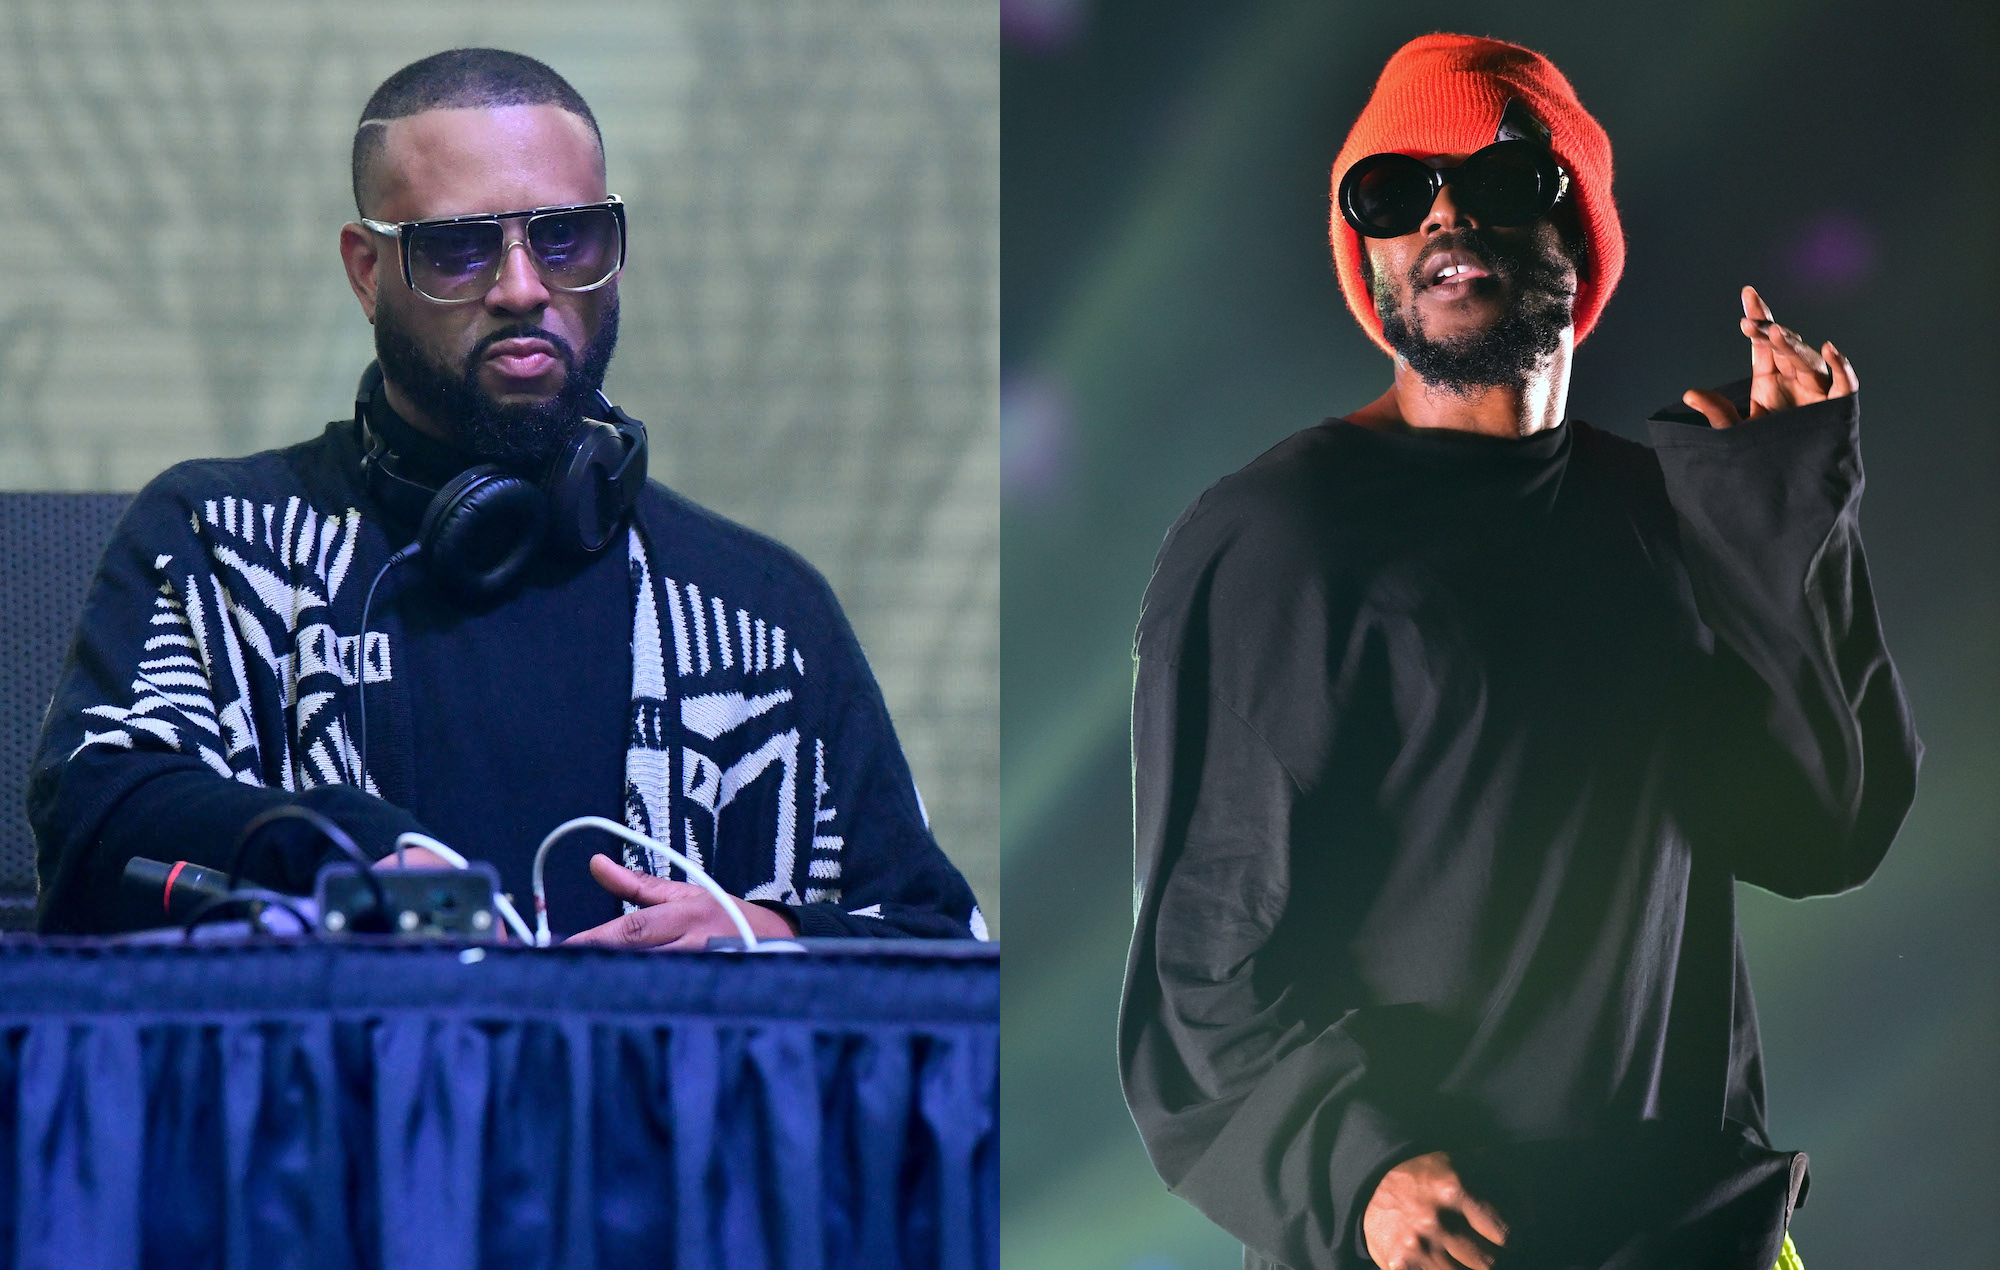 Madlib says Kendrick Lamar wanted to work with him on 'To Pimp A Butterfly'